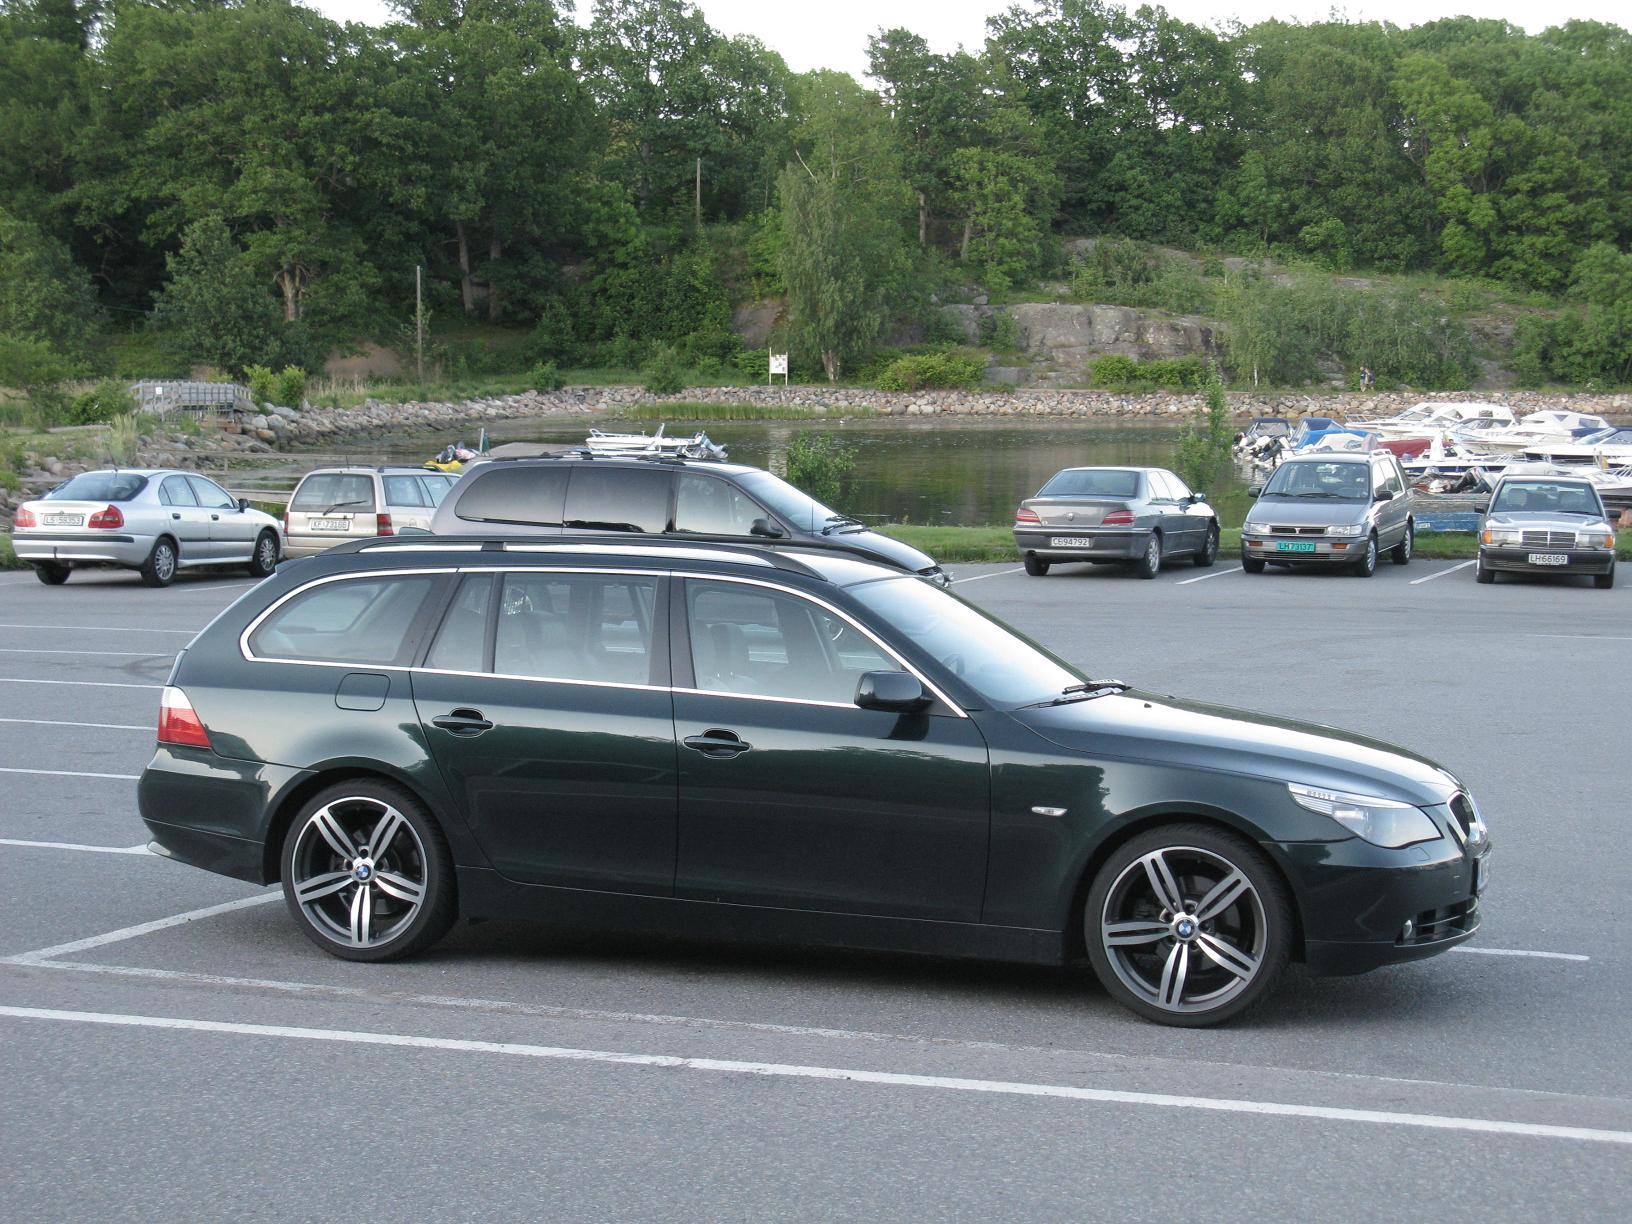 File:BMW 5 series Touring E61 (4736422410).jpg